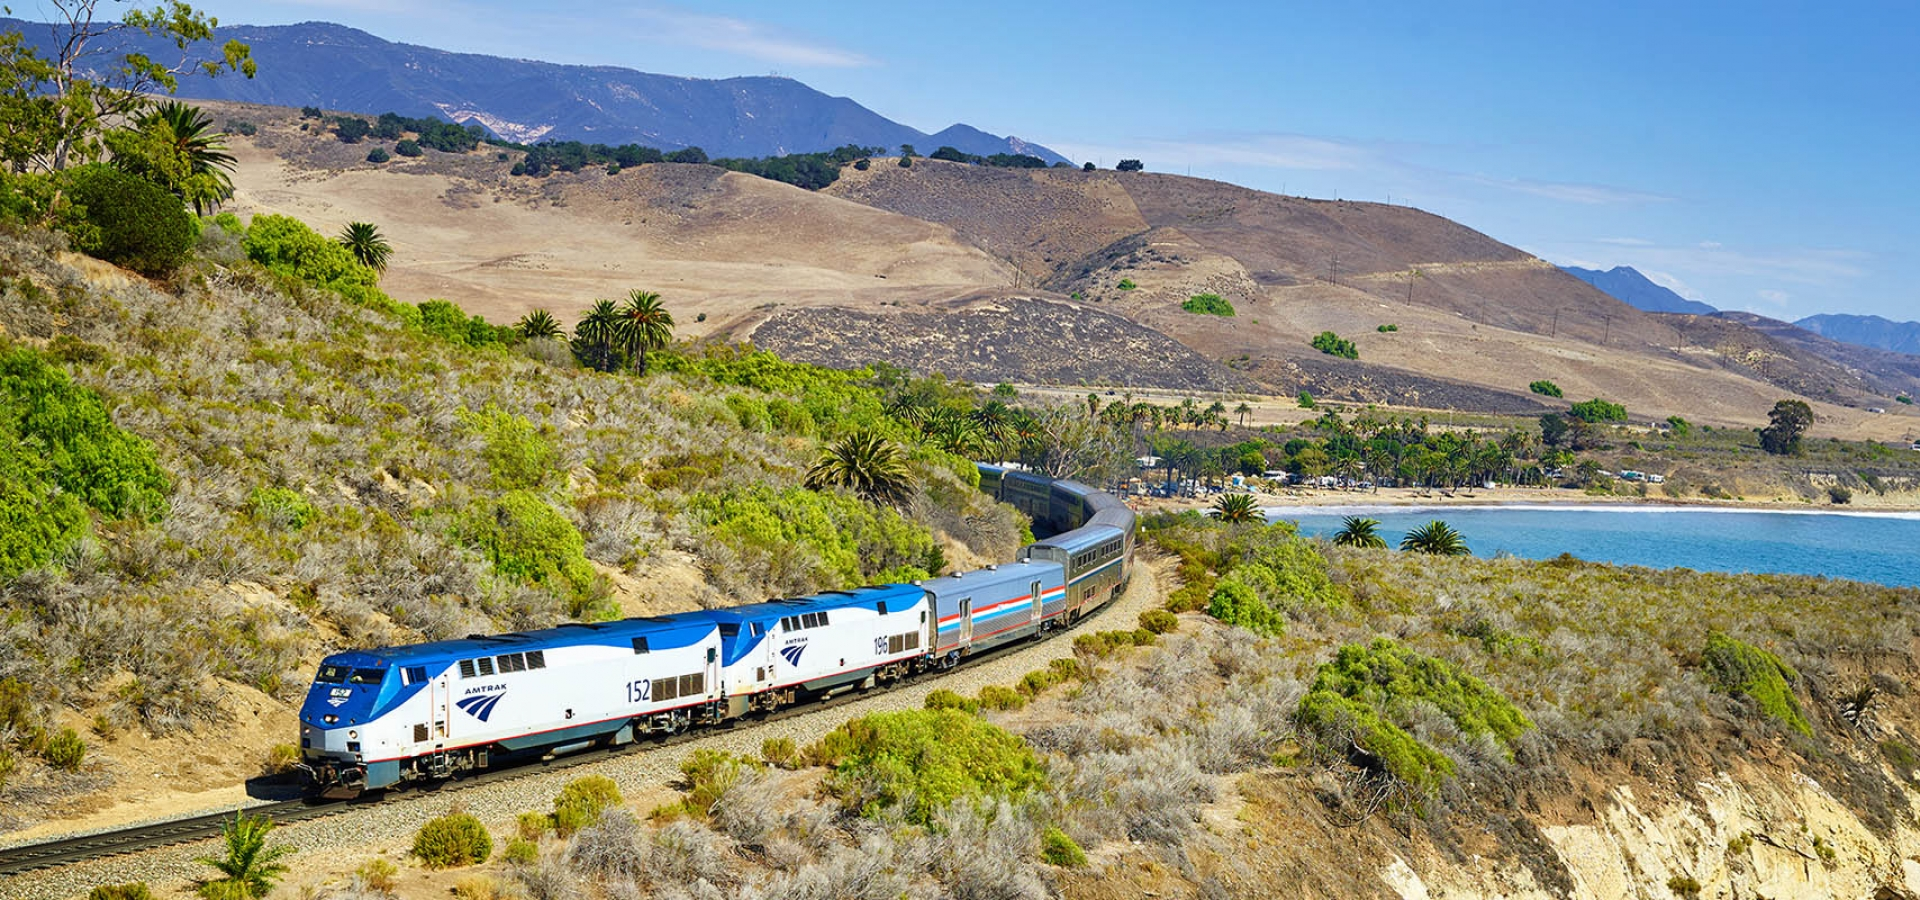 Amtrak's Coast Starlight on a Coast-to-coast journey